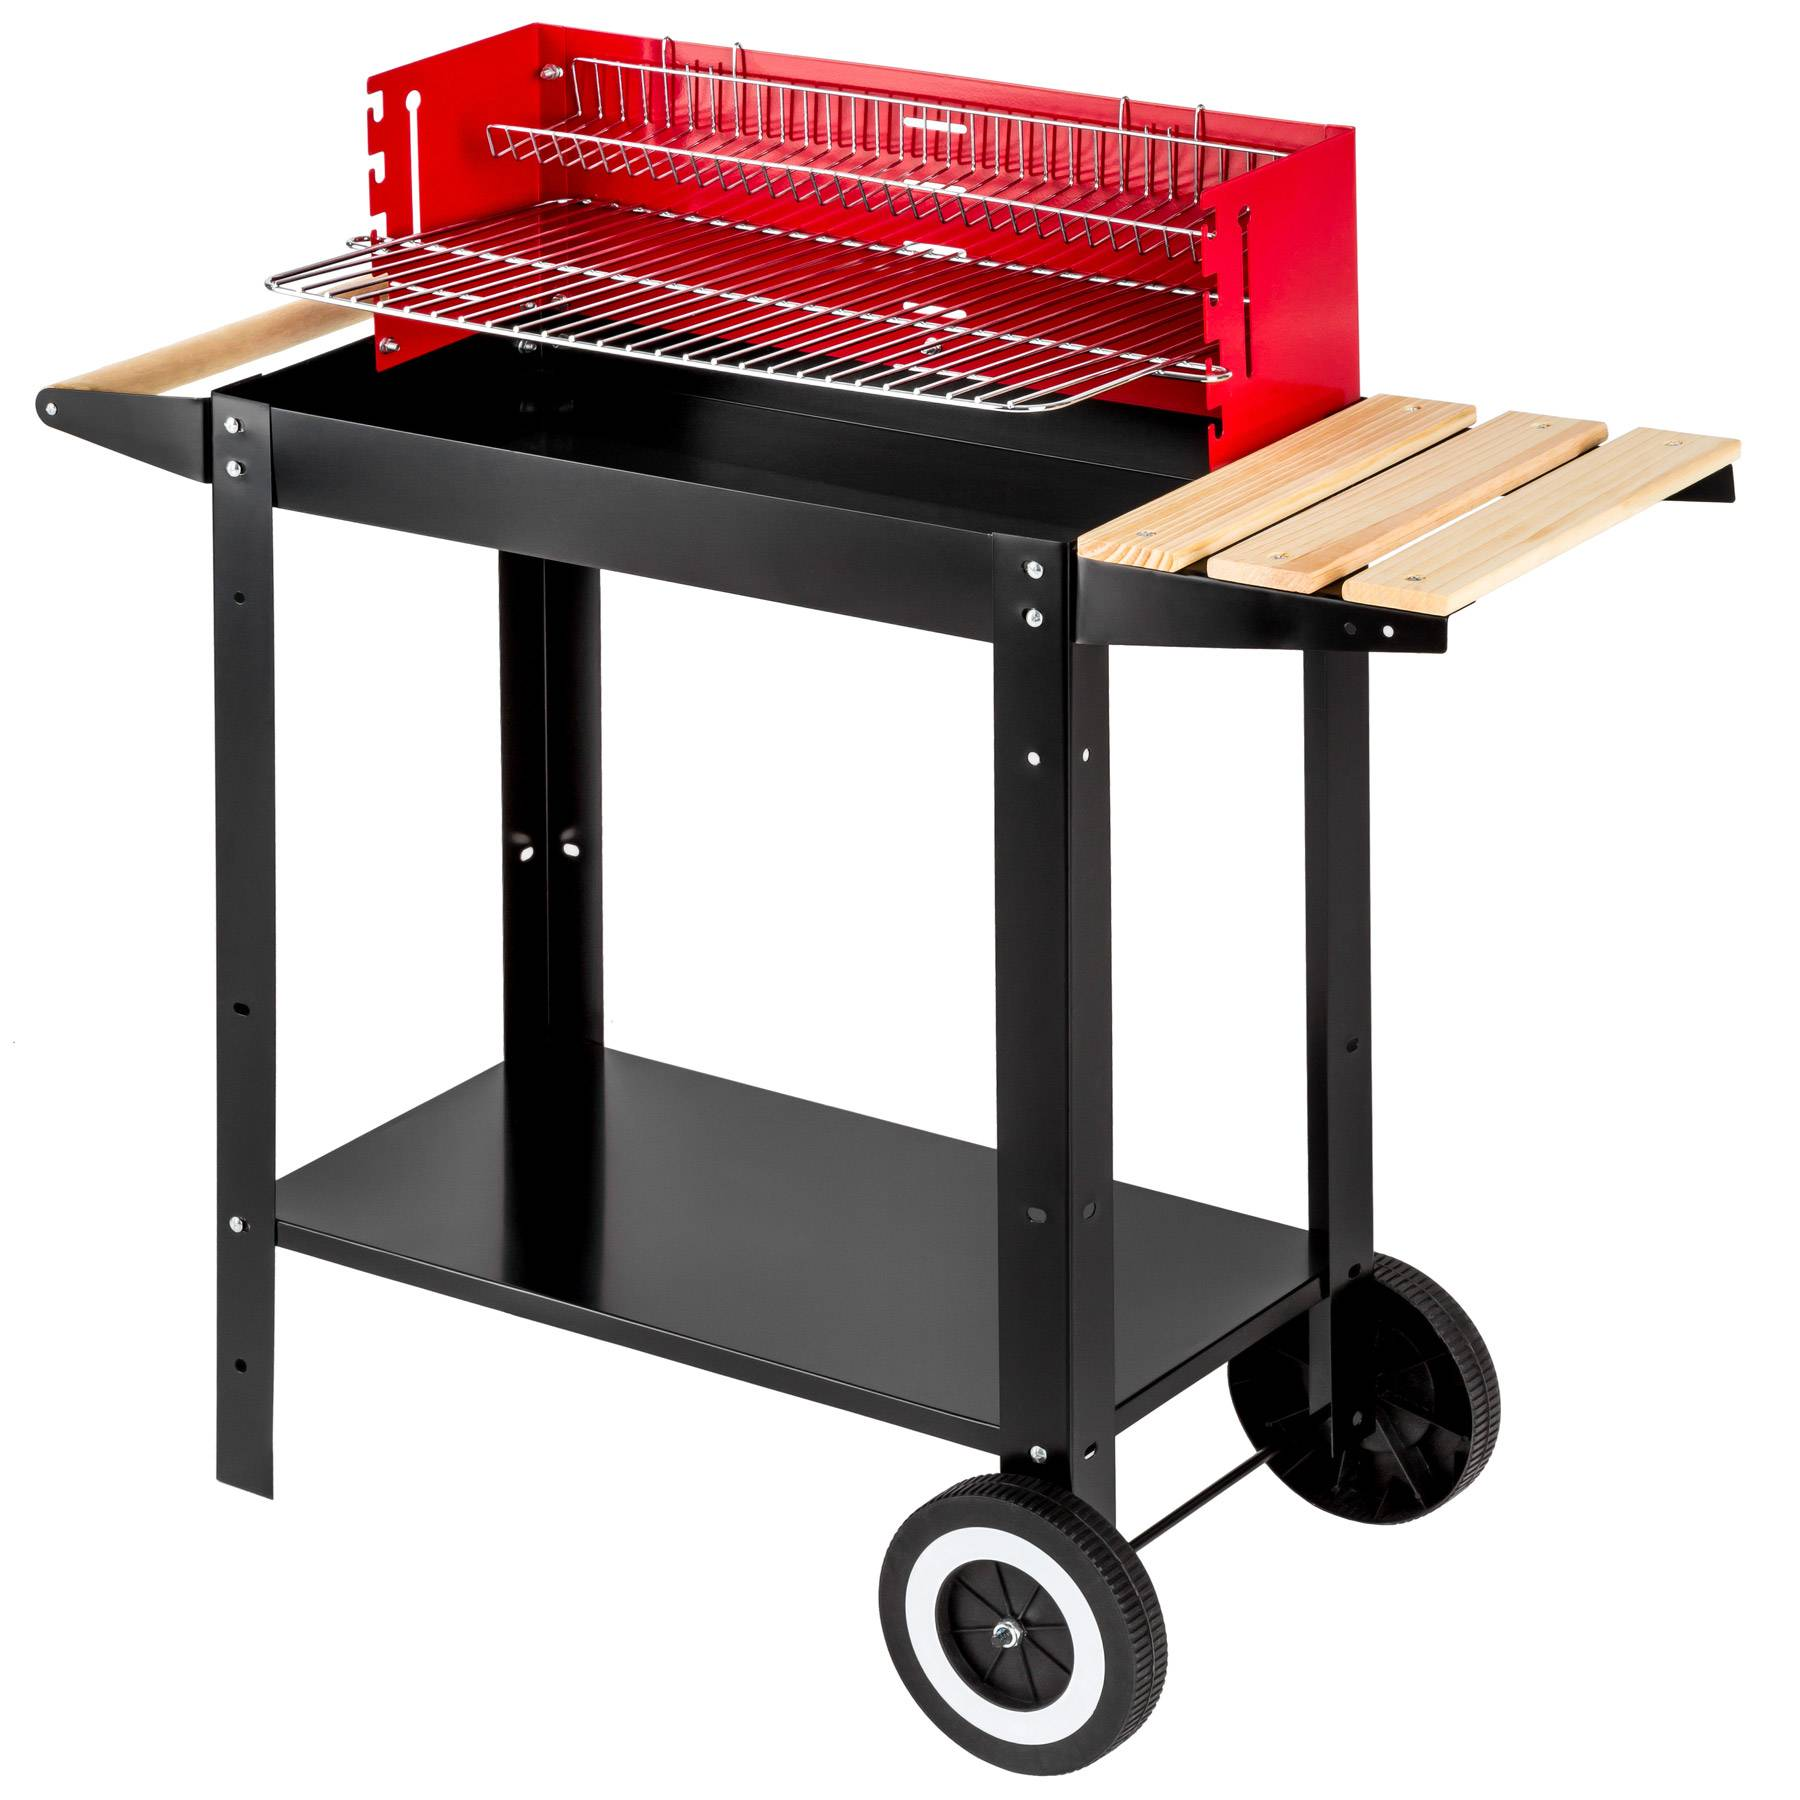 tectake BBQ grill - black/red